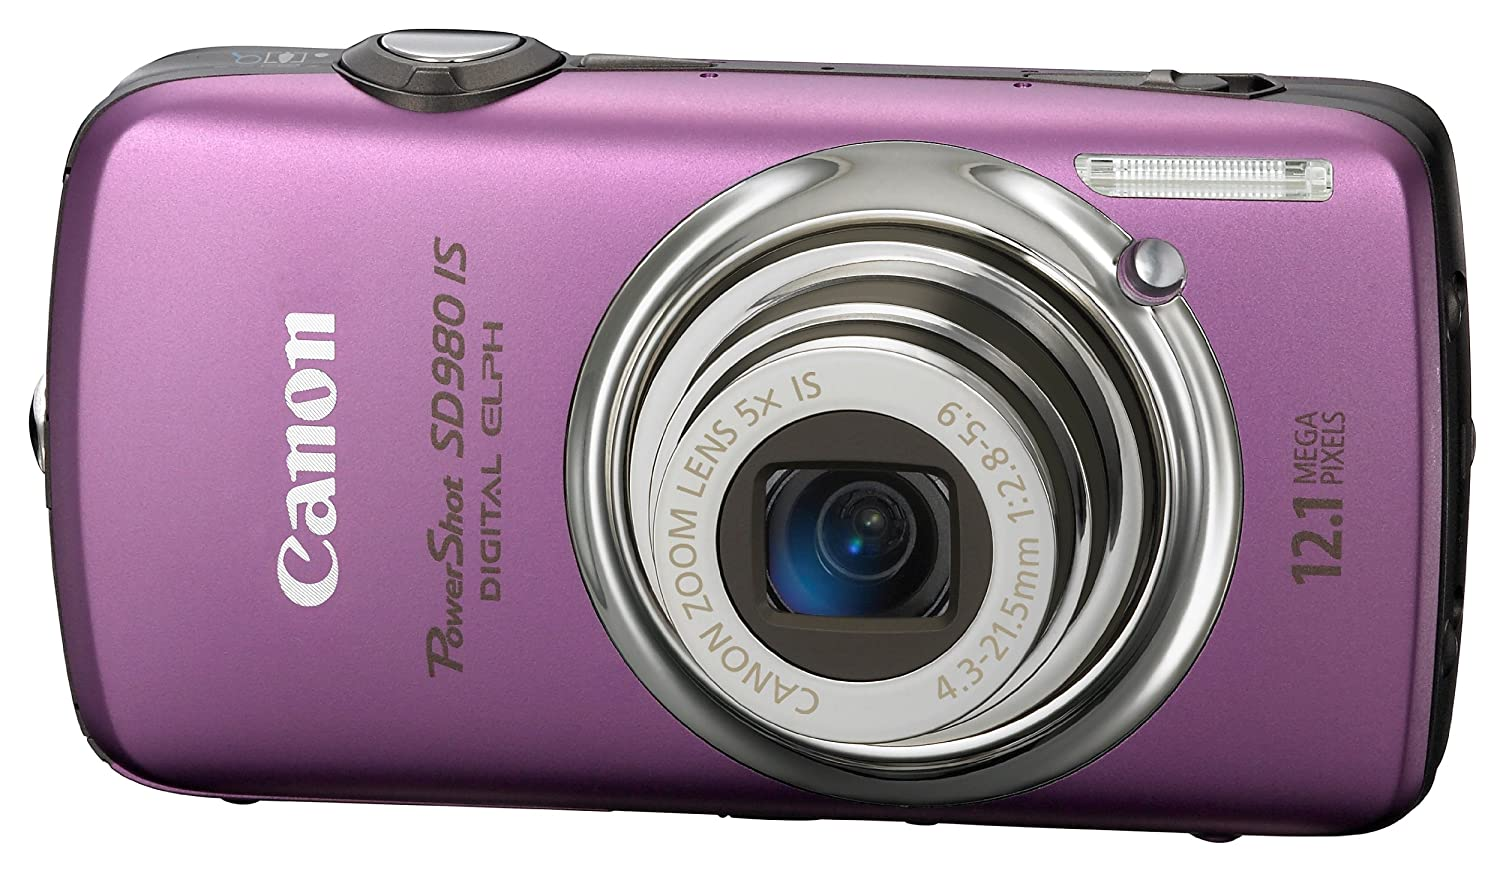 Canon PowerShot SD980IS 12.1MP Digital Camera with 5x Ultra Wide Angle Optical Image Stabilized Zoom and 3-inch LCD (Silver)